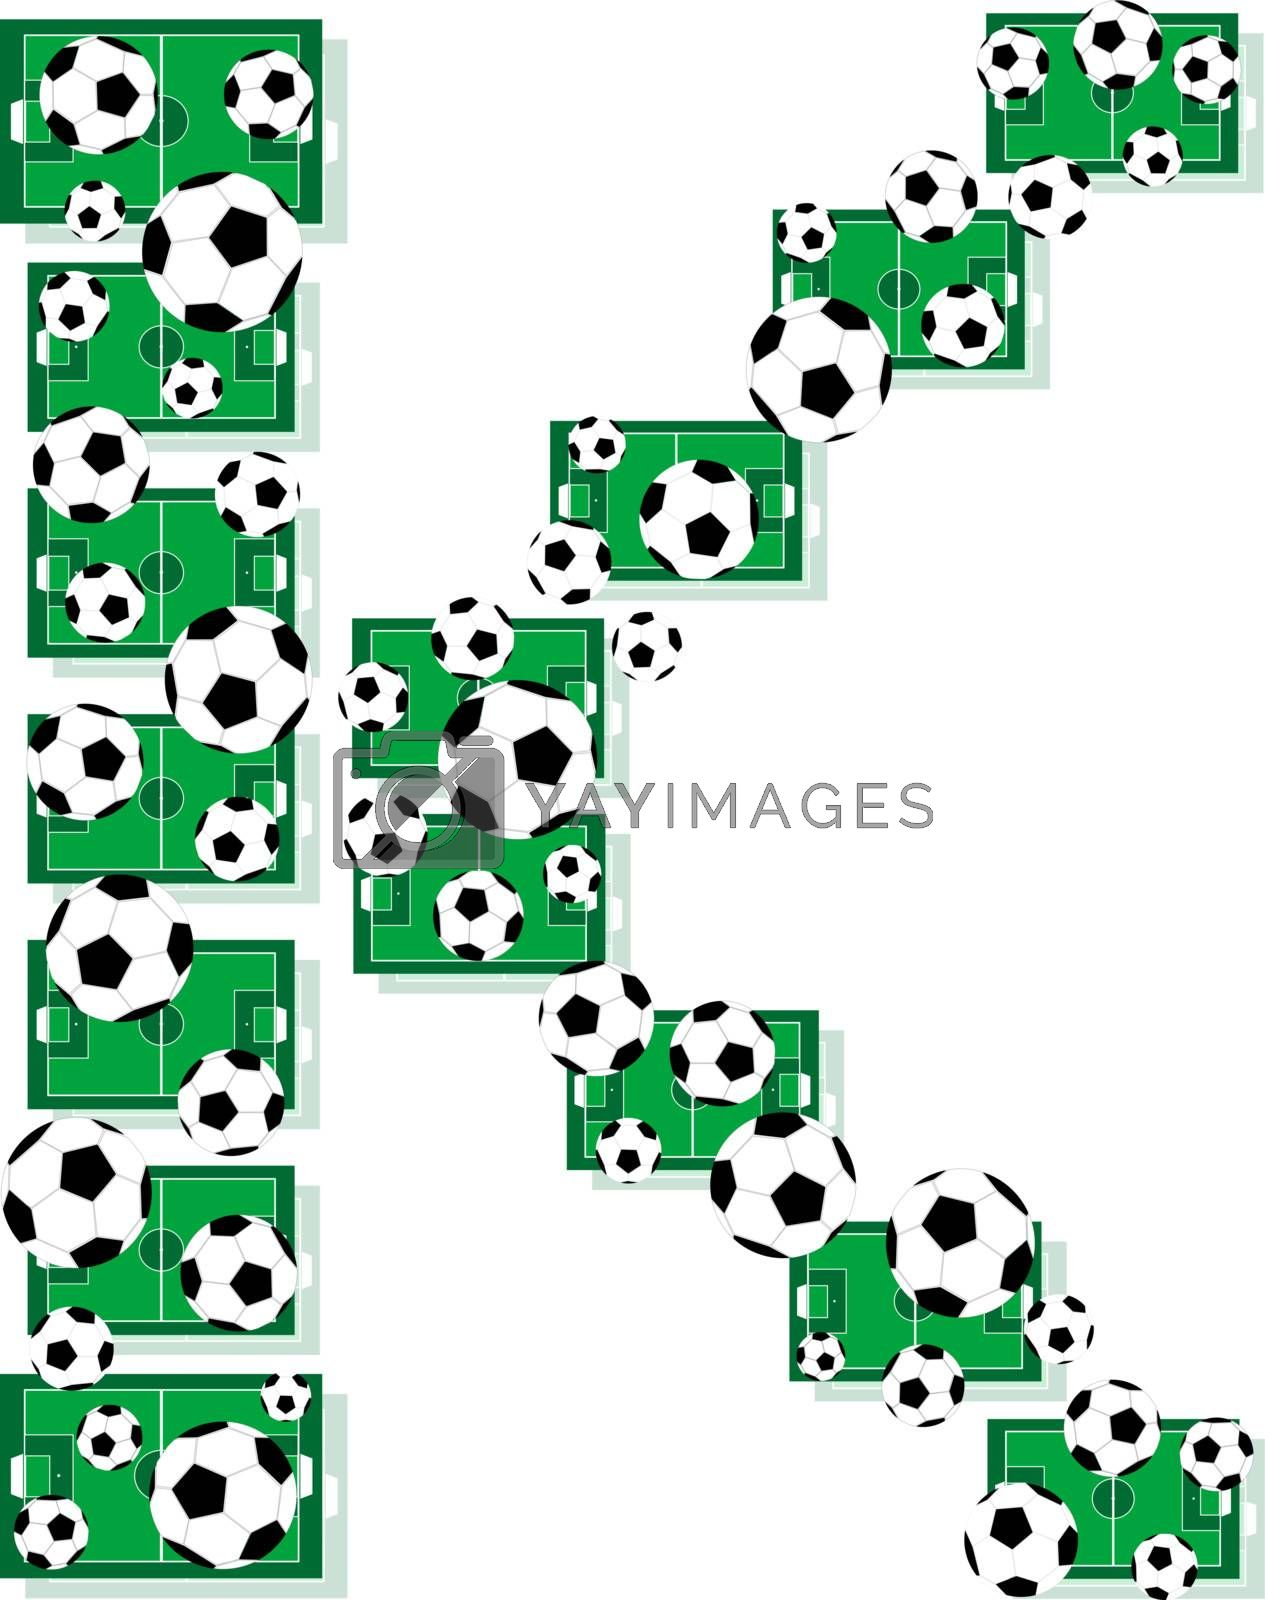 K, Alphabet Football letters made of soccer balls and fields. Vector